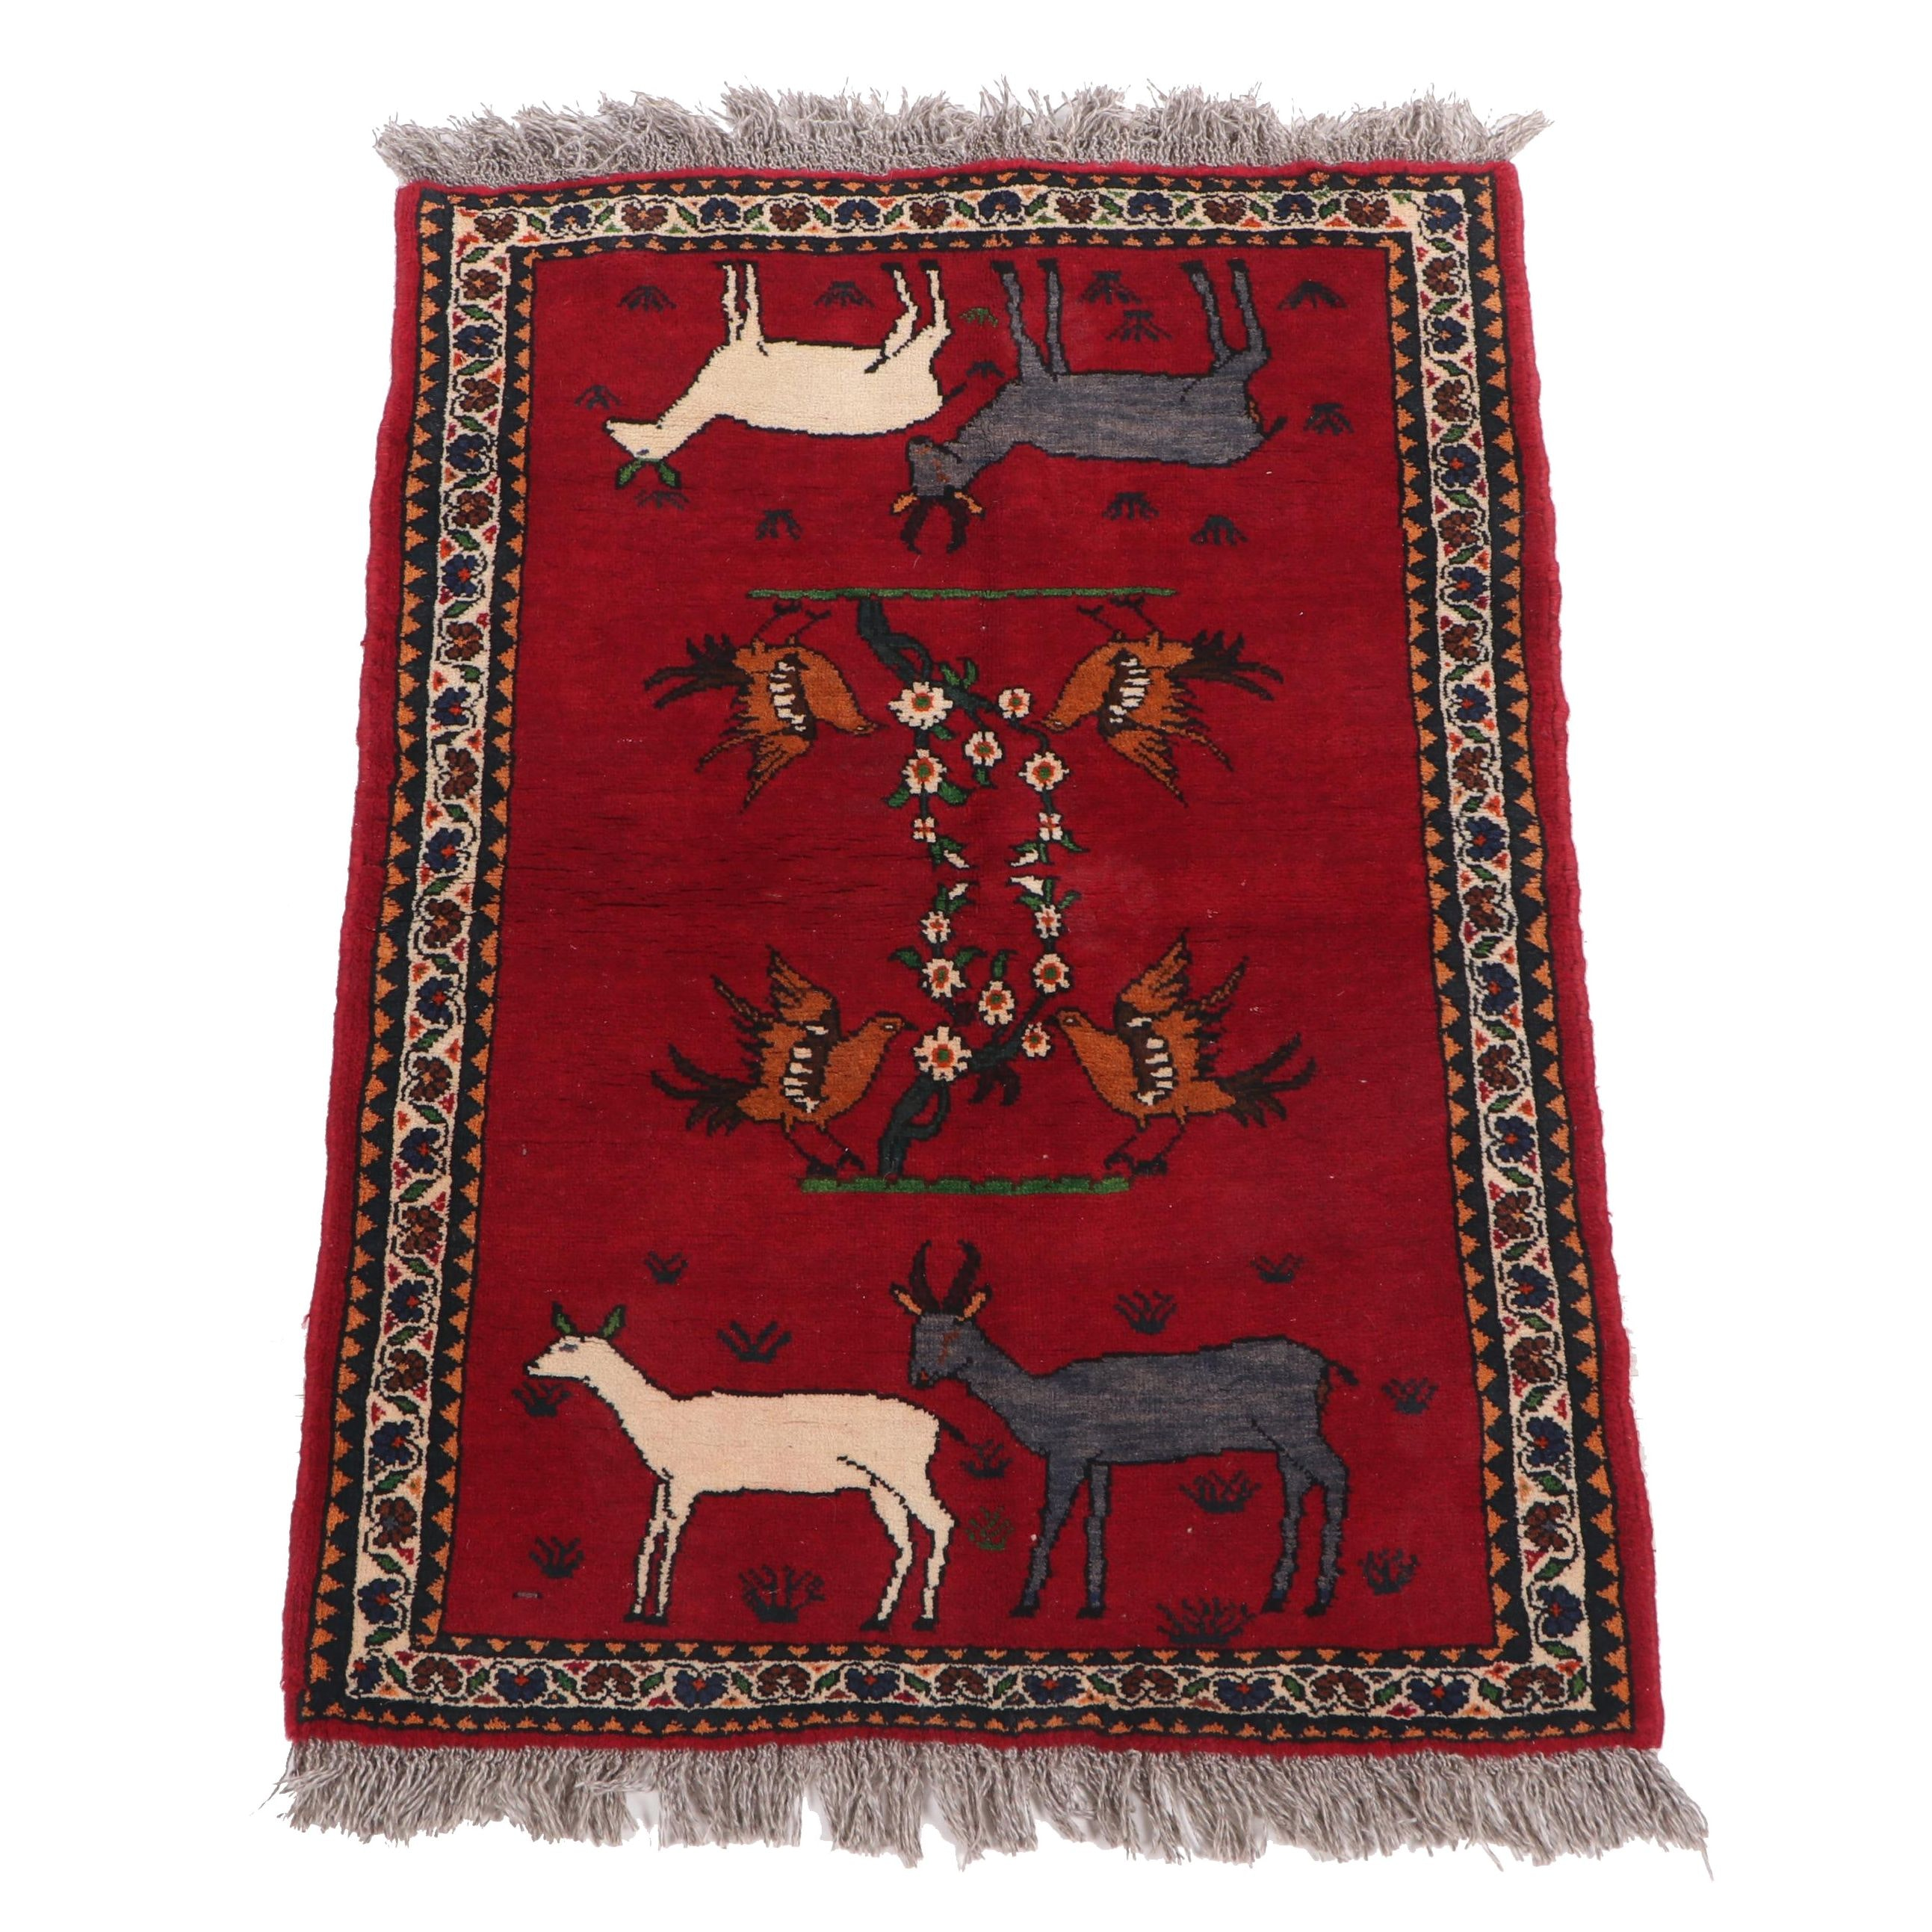 Hand-Knotted Qashqai or Shiraz Pictorial Wool Rug